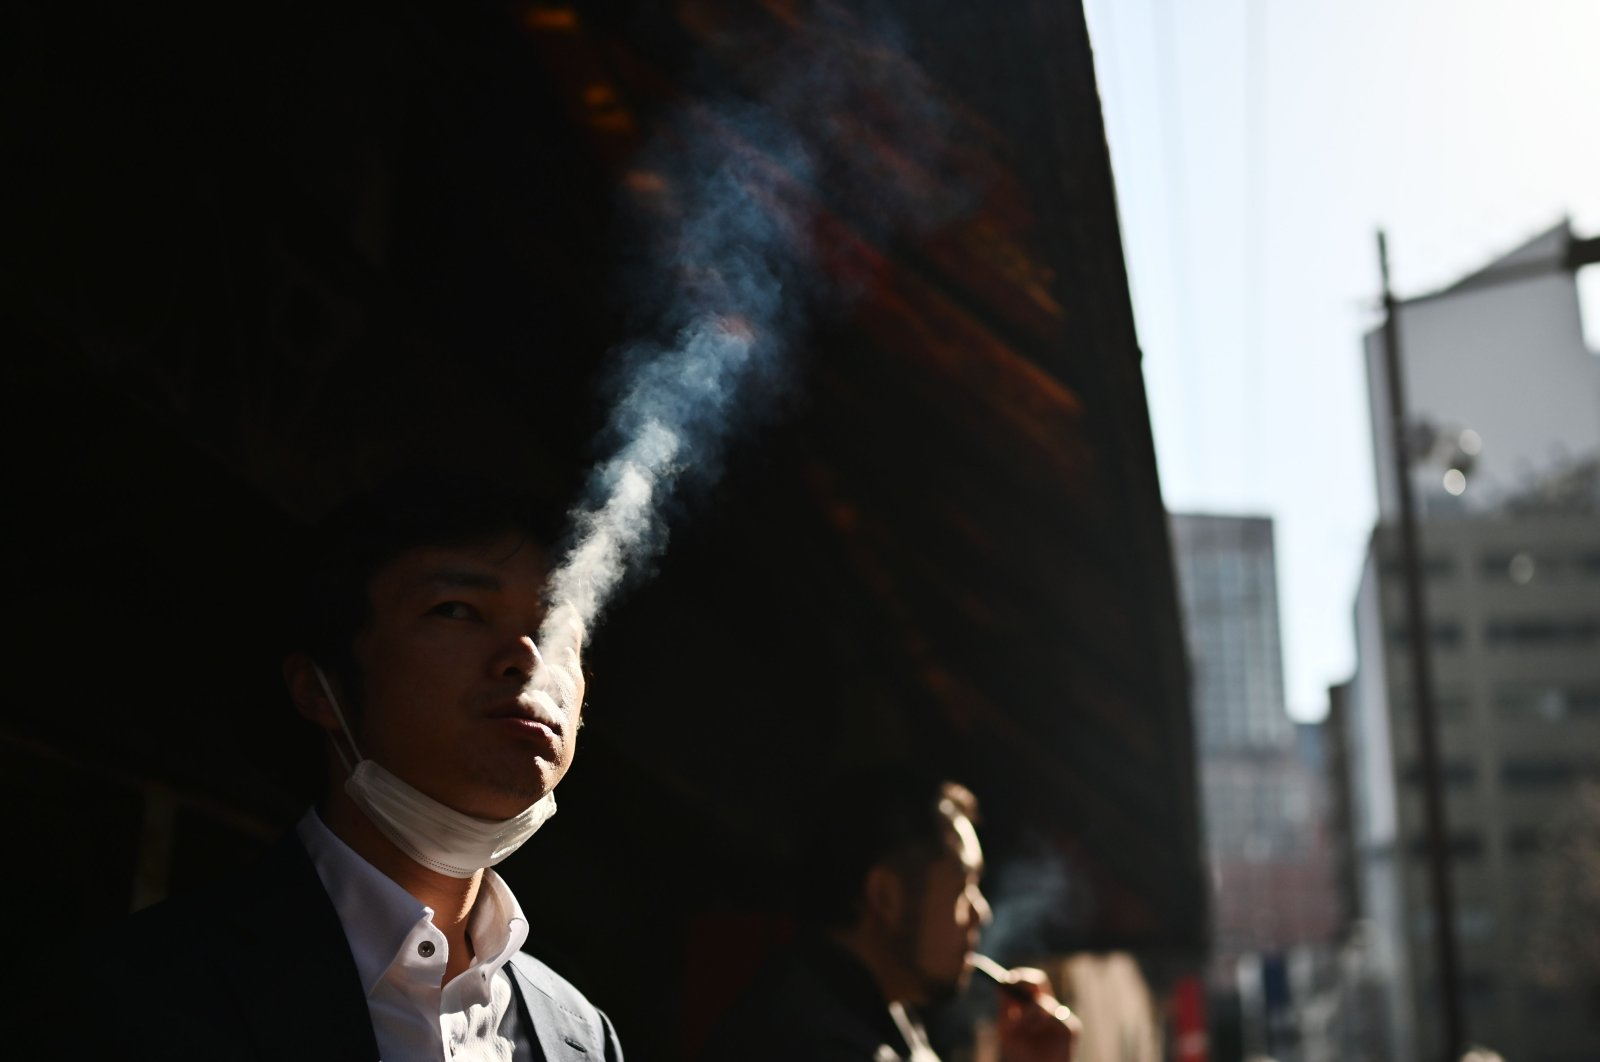 People smoke in a designated smoking area on a street in the Yurakucho area, Tokyo, Japan, March 26, 2020. (AFP Photo)